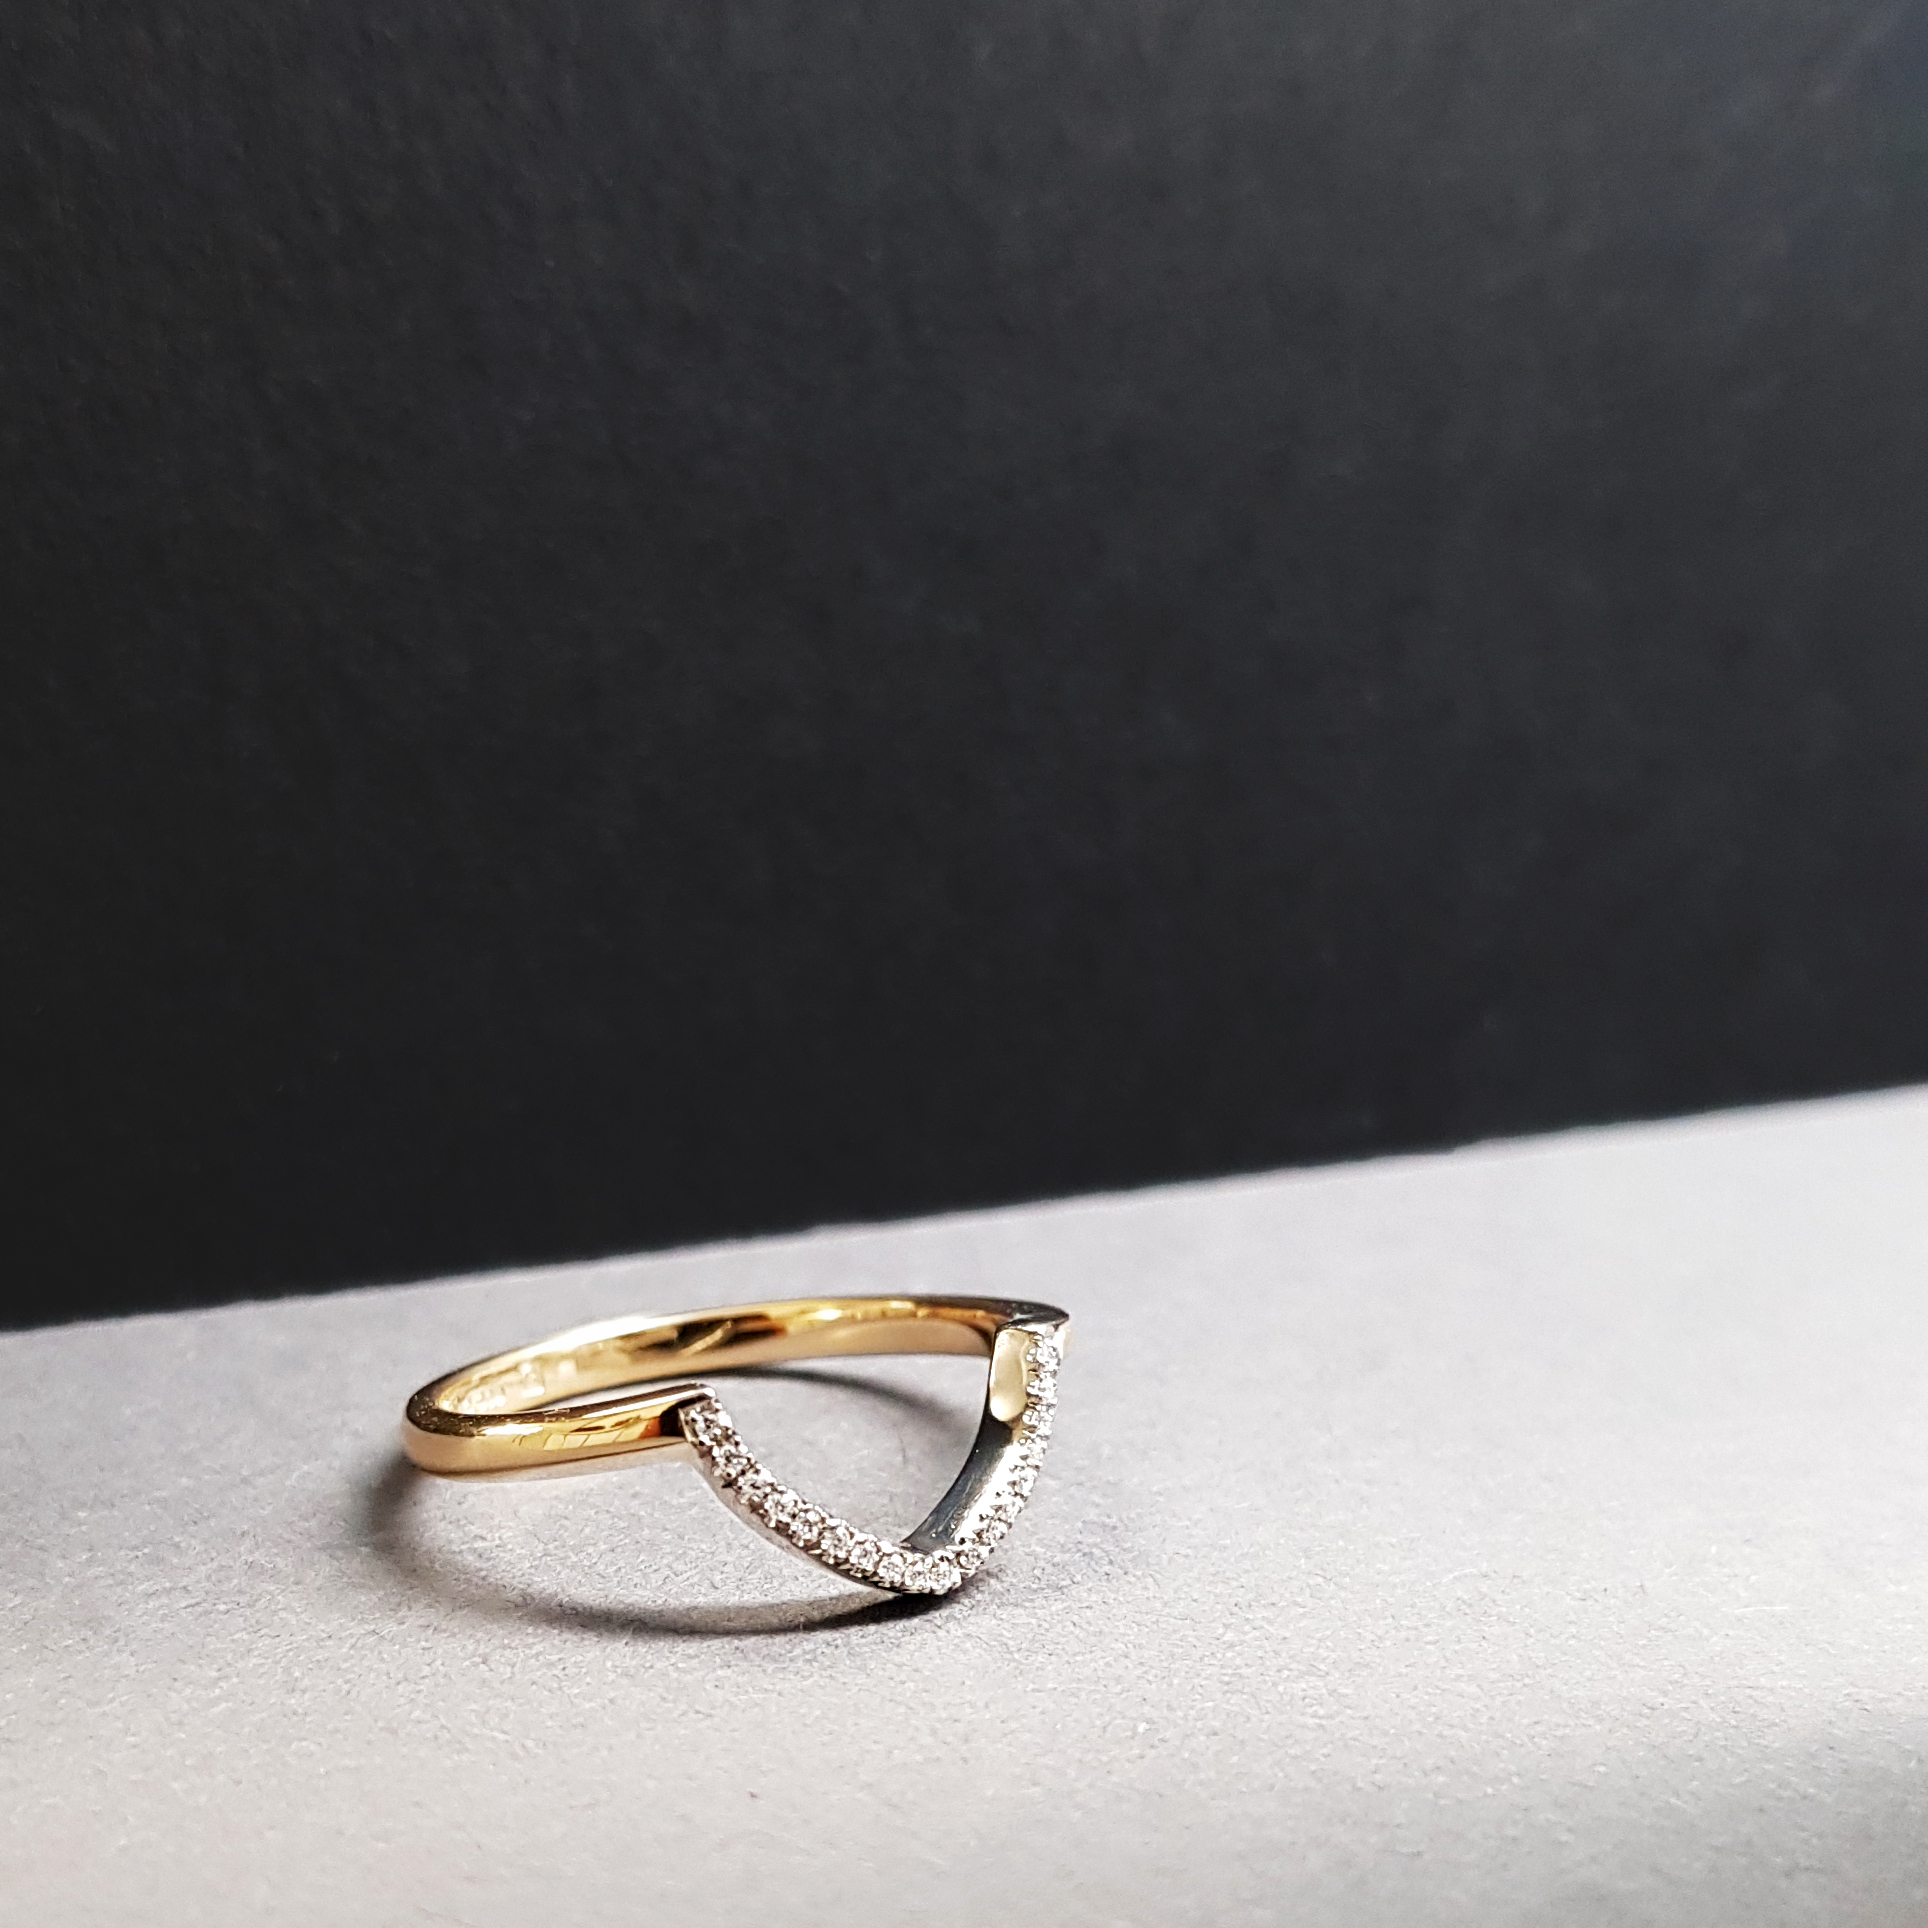 V-shaped diamond wedding ring dramtically lit and sitting on a white surface with a black background.